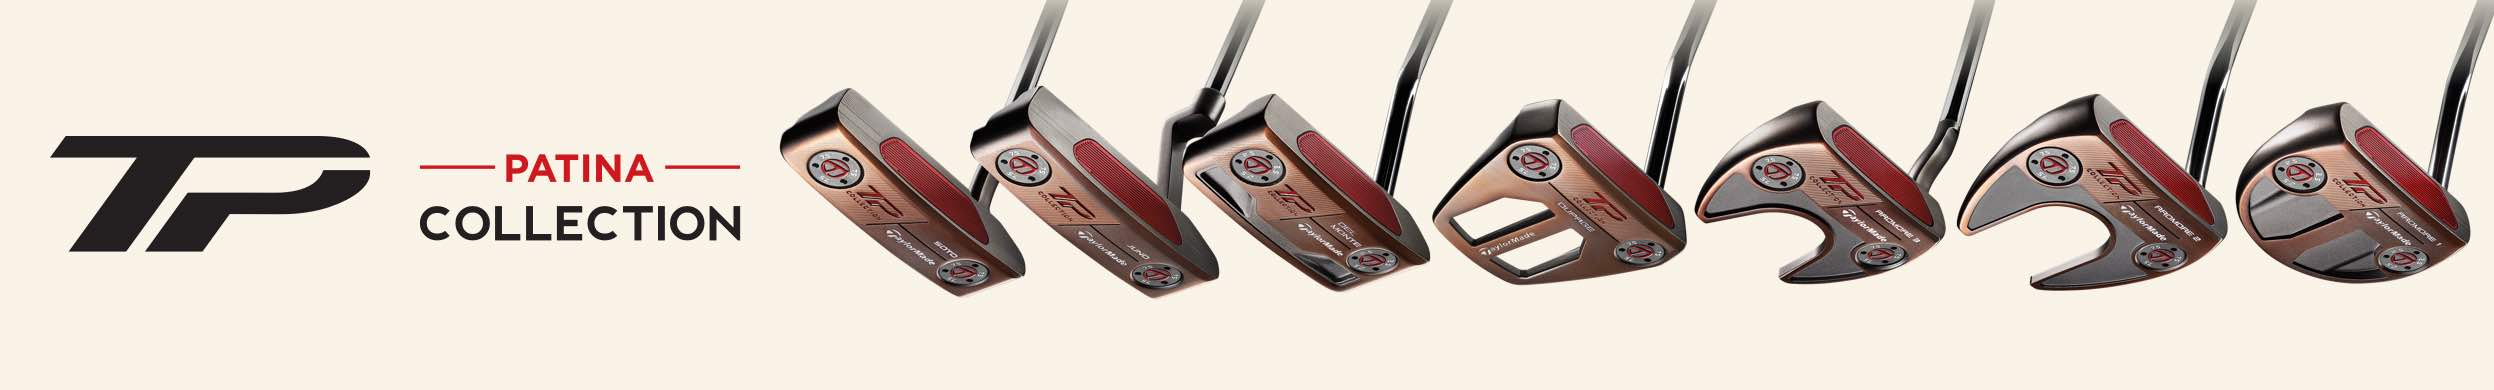 Milled Putters